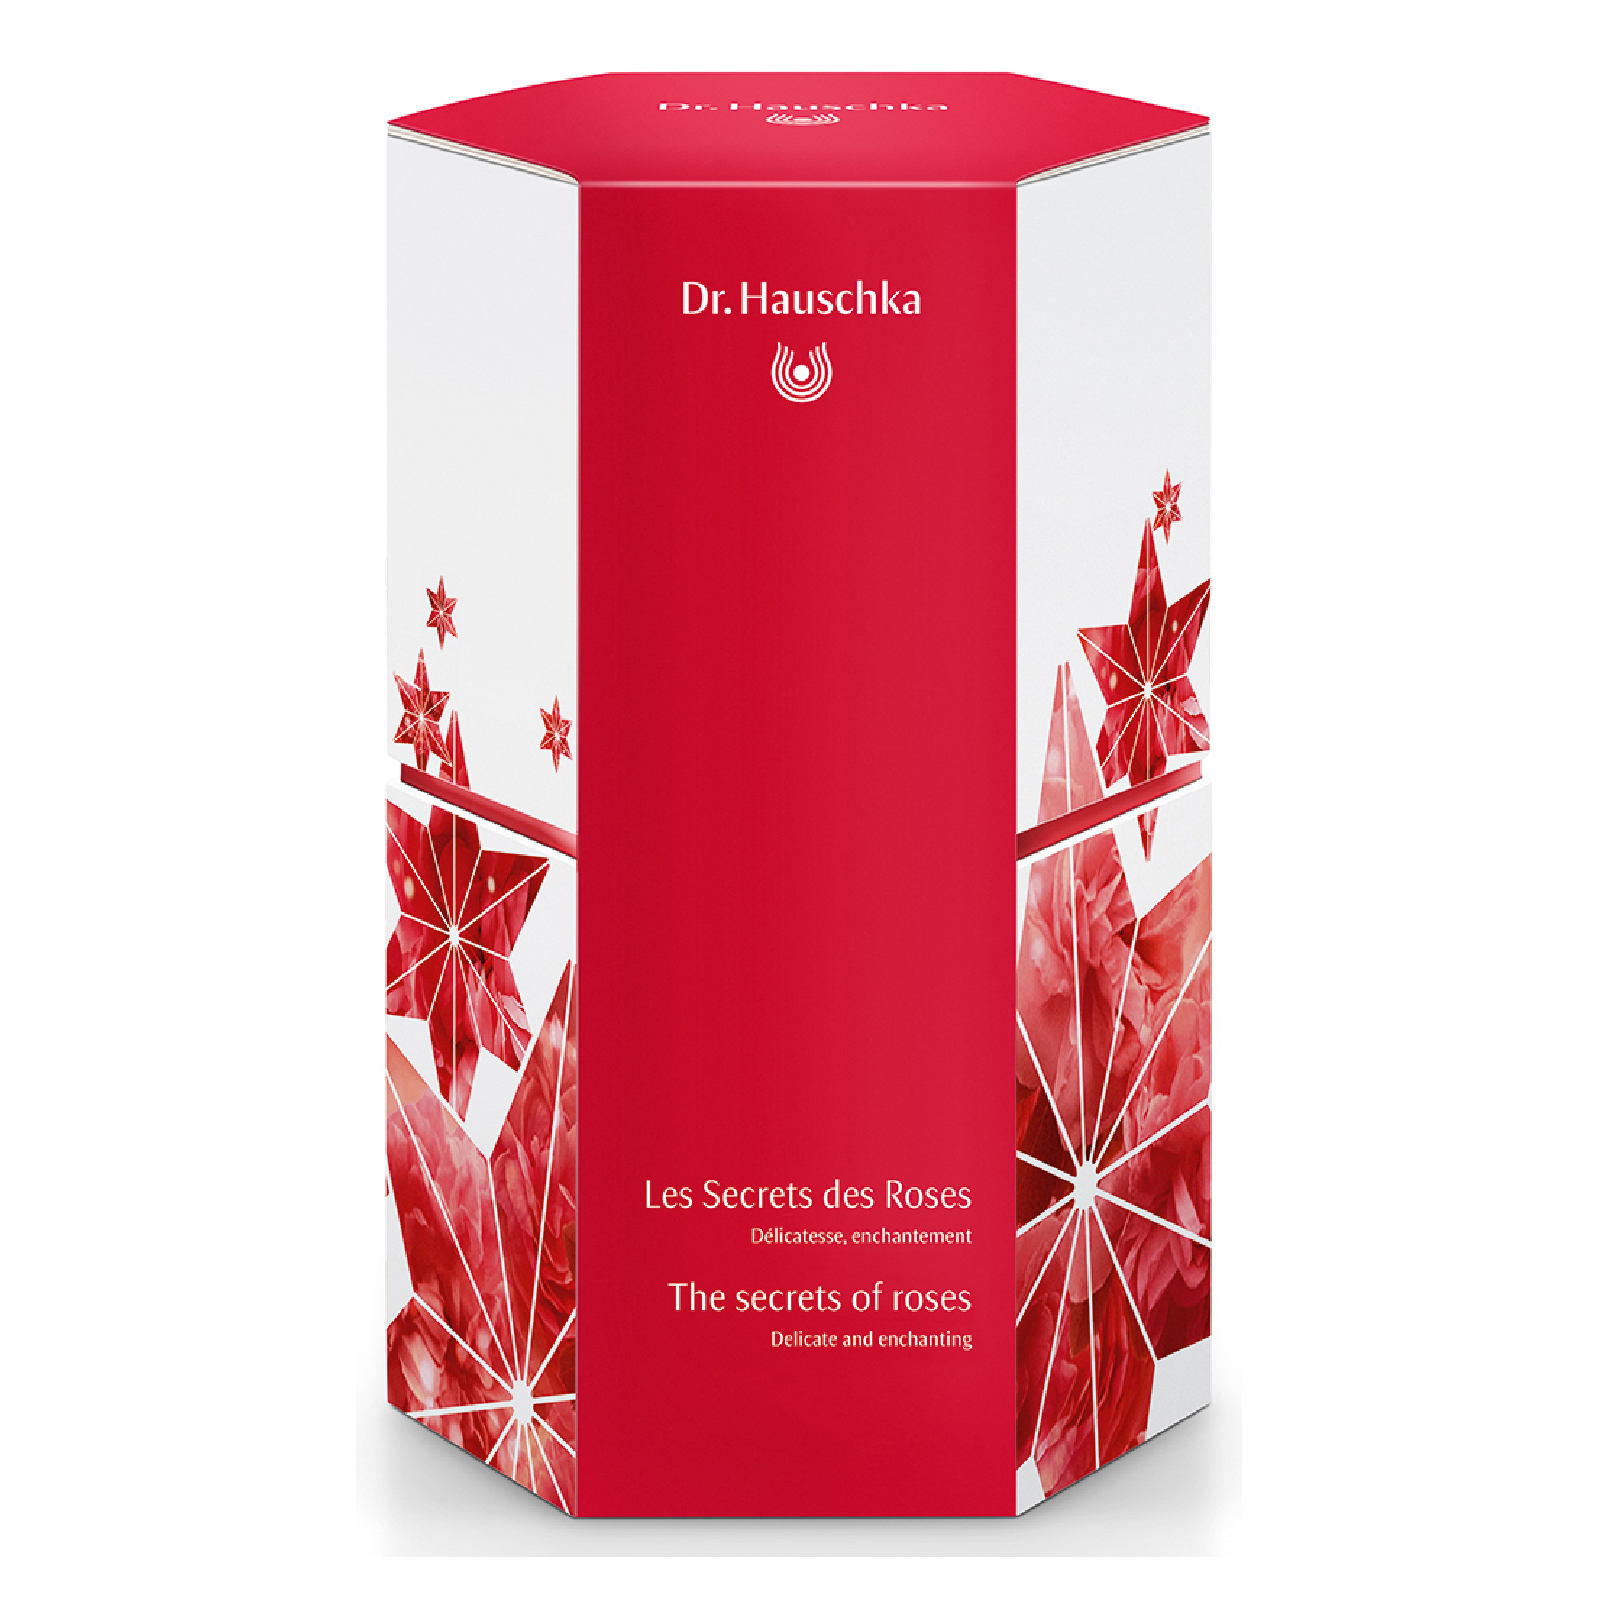 Dr. Hauschka The Secret of Roses Gift Set